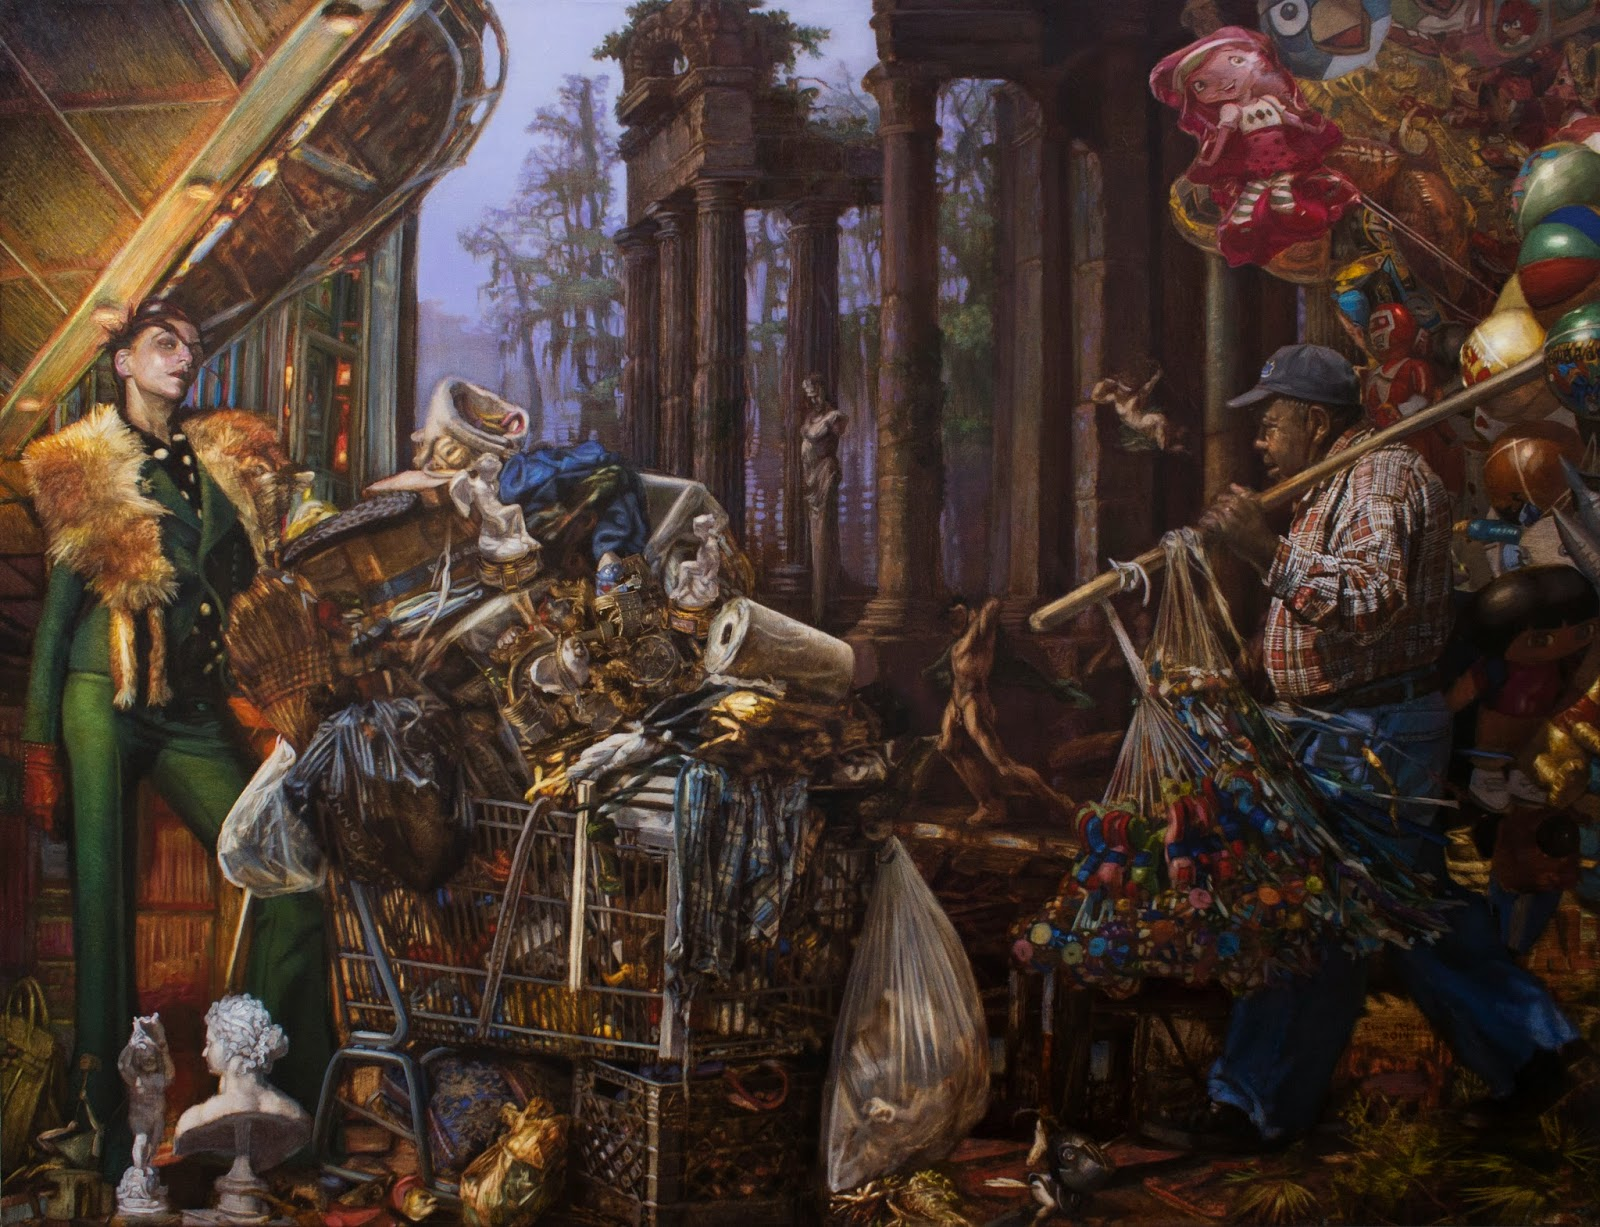 Isaac McCaslin, Collector Of Fine Things, oil on canvas, 40 in. x 60 in. 2014